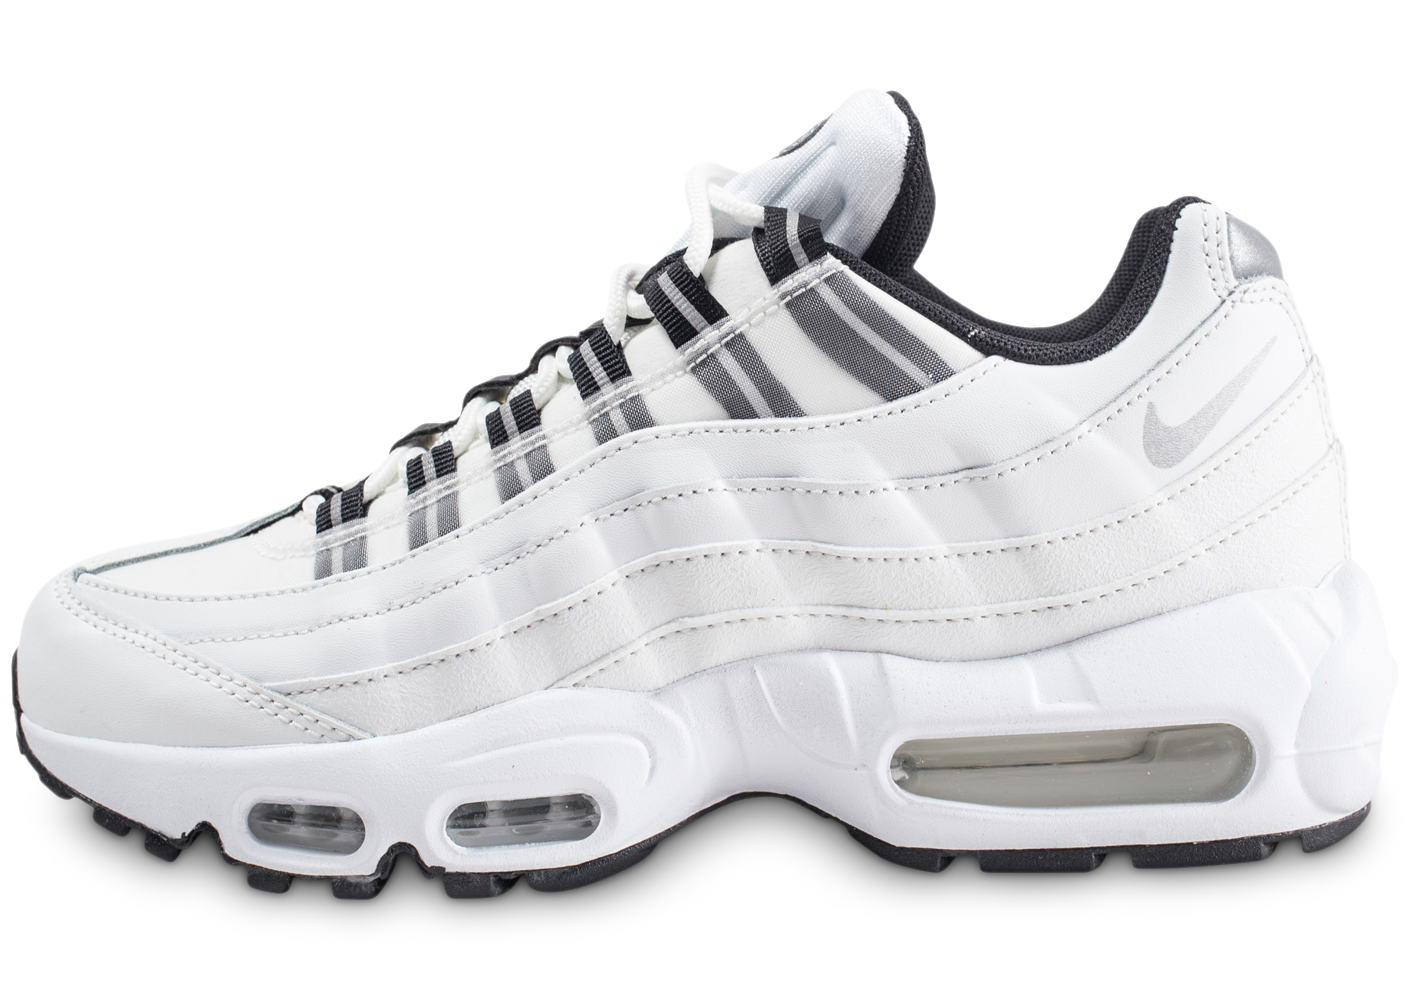 best authentic e4ea8 e2e8f Nike air max 95 blanche et argent femme baskets